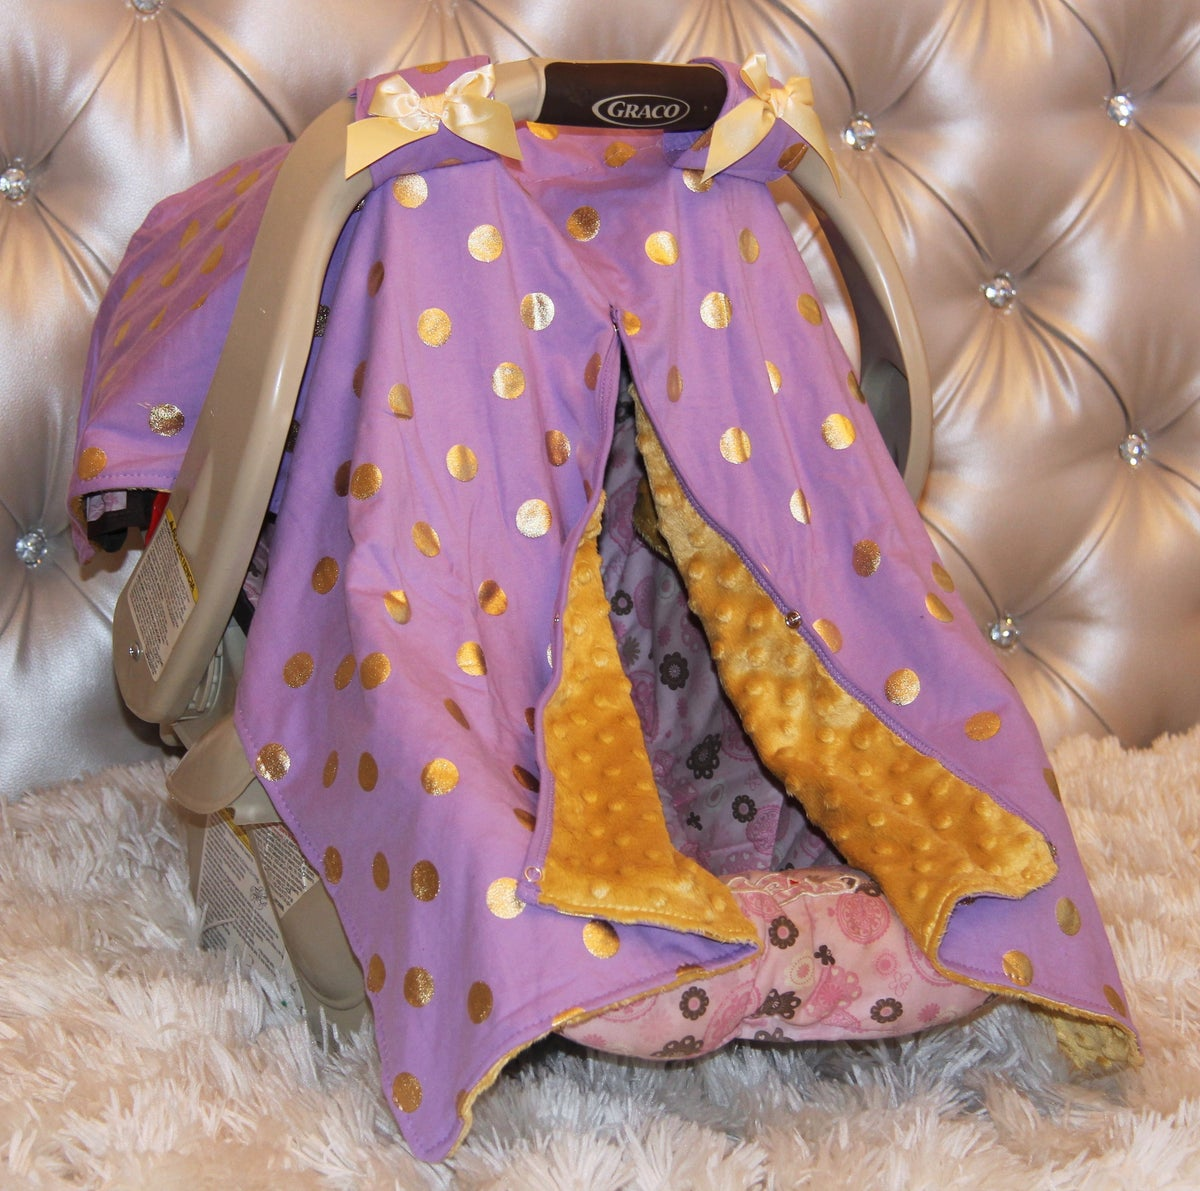 Swell Lavender Purple Gold Dot Glamour Minky Baby Car Seat Cover Baby Shower Gift Forskolin Free Trial Chair Design Images Forskolin Free Trialorg